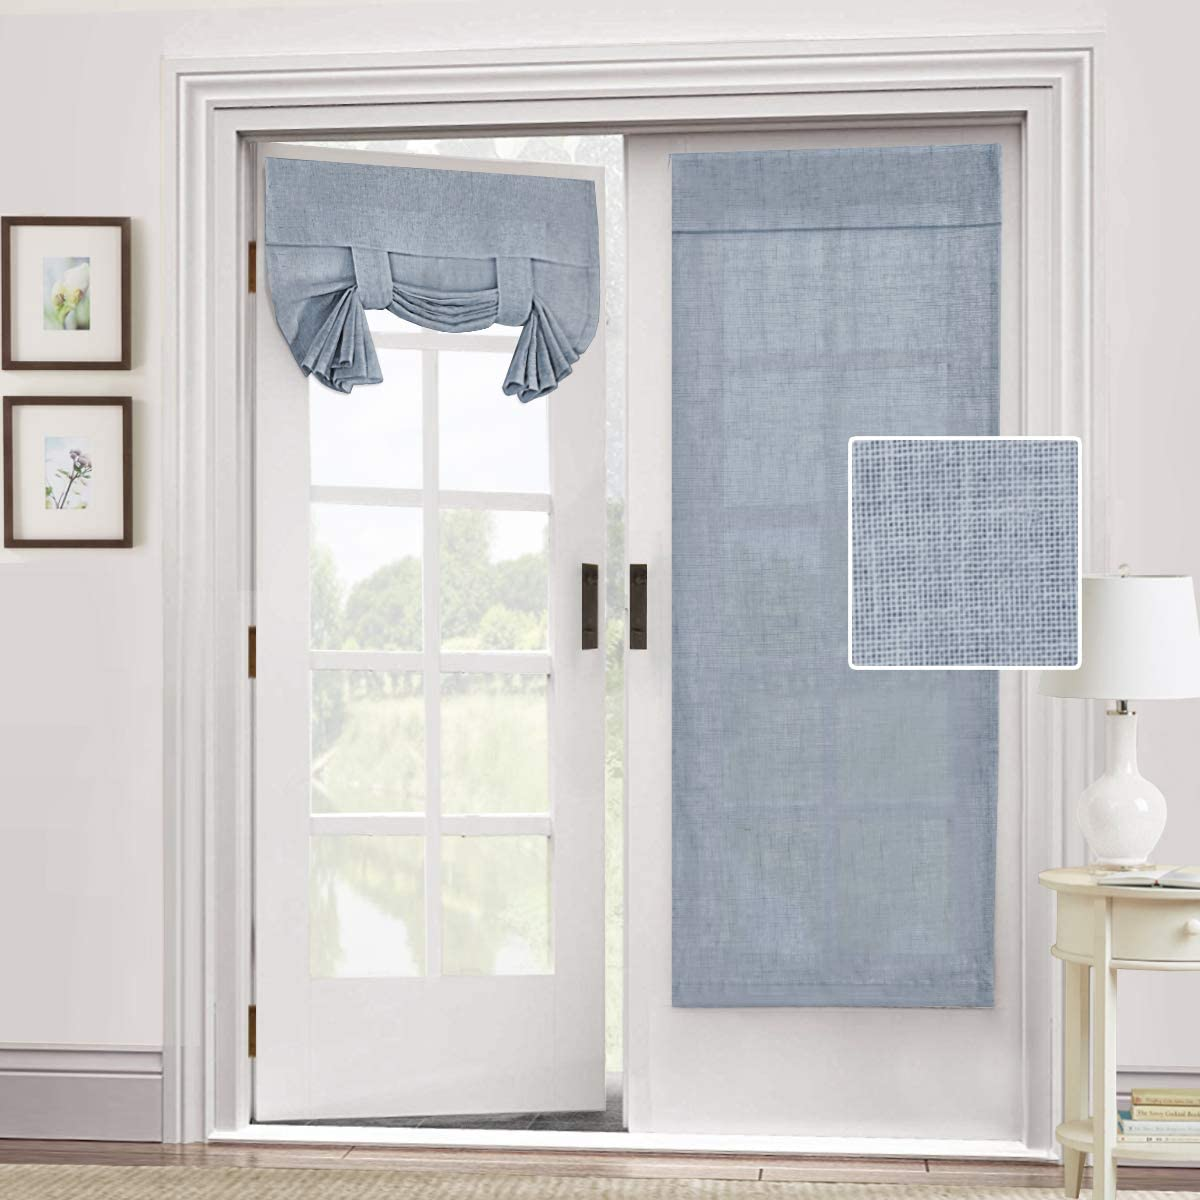 Natural Linen Blended Door Curtain - Privacy French Door Curtain Light Filgtering Tricia Window Door Curtain for Patio Door Sidelight Glass Door Blind Tie Up Shade, 26 x 68 inches, 1 Panel, Stone Blue